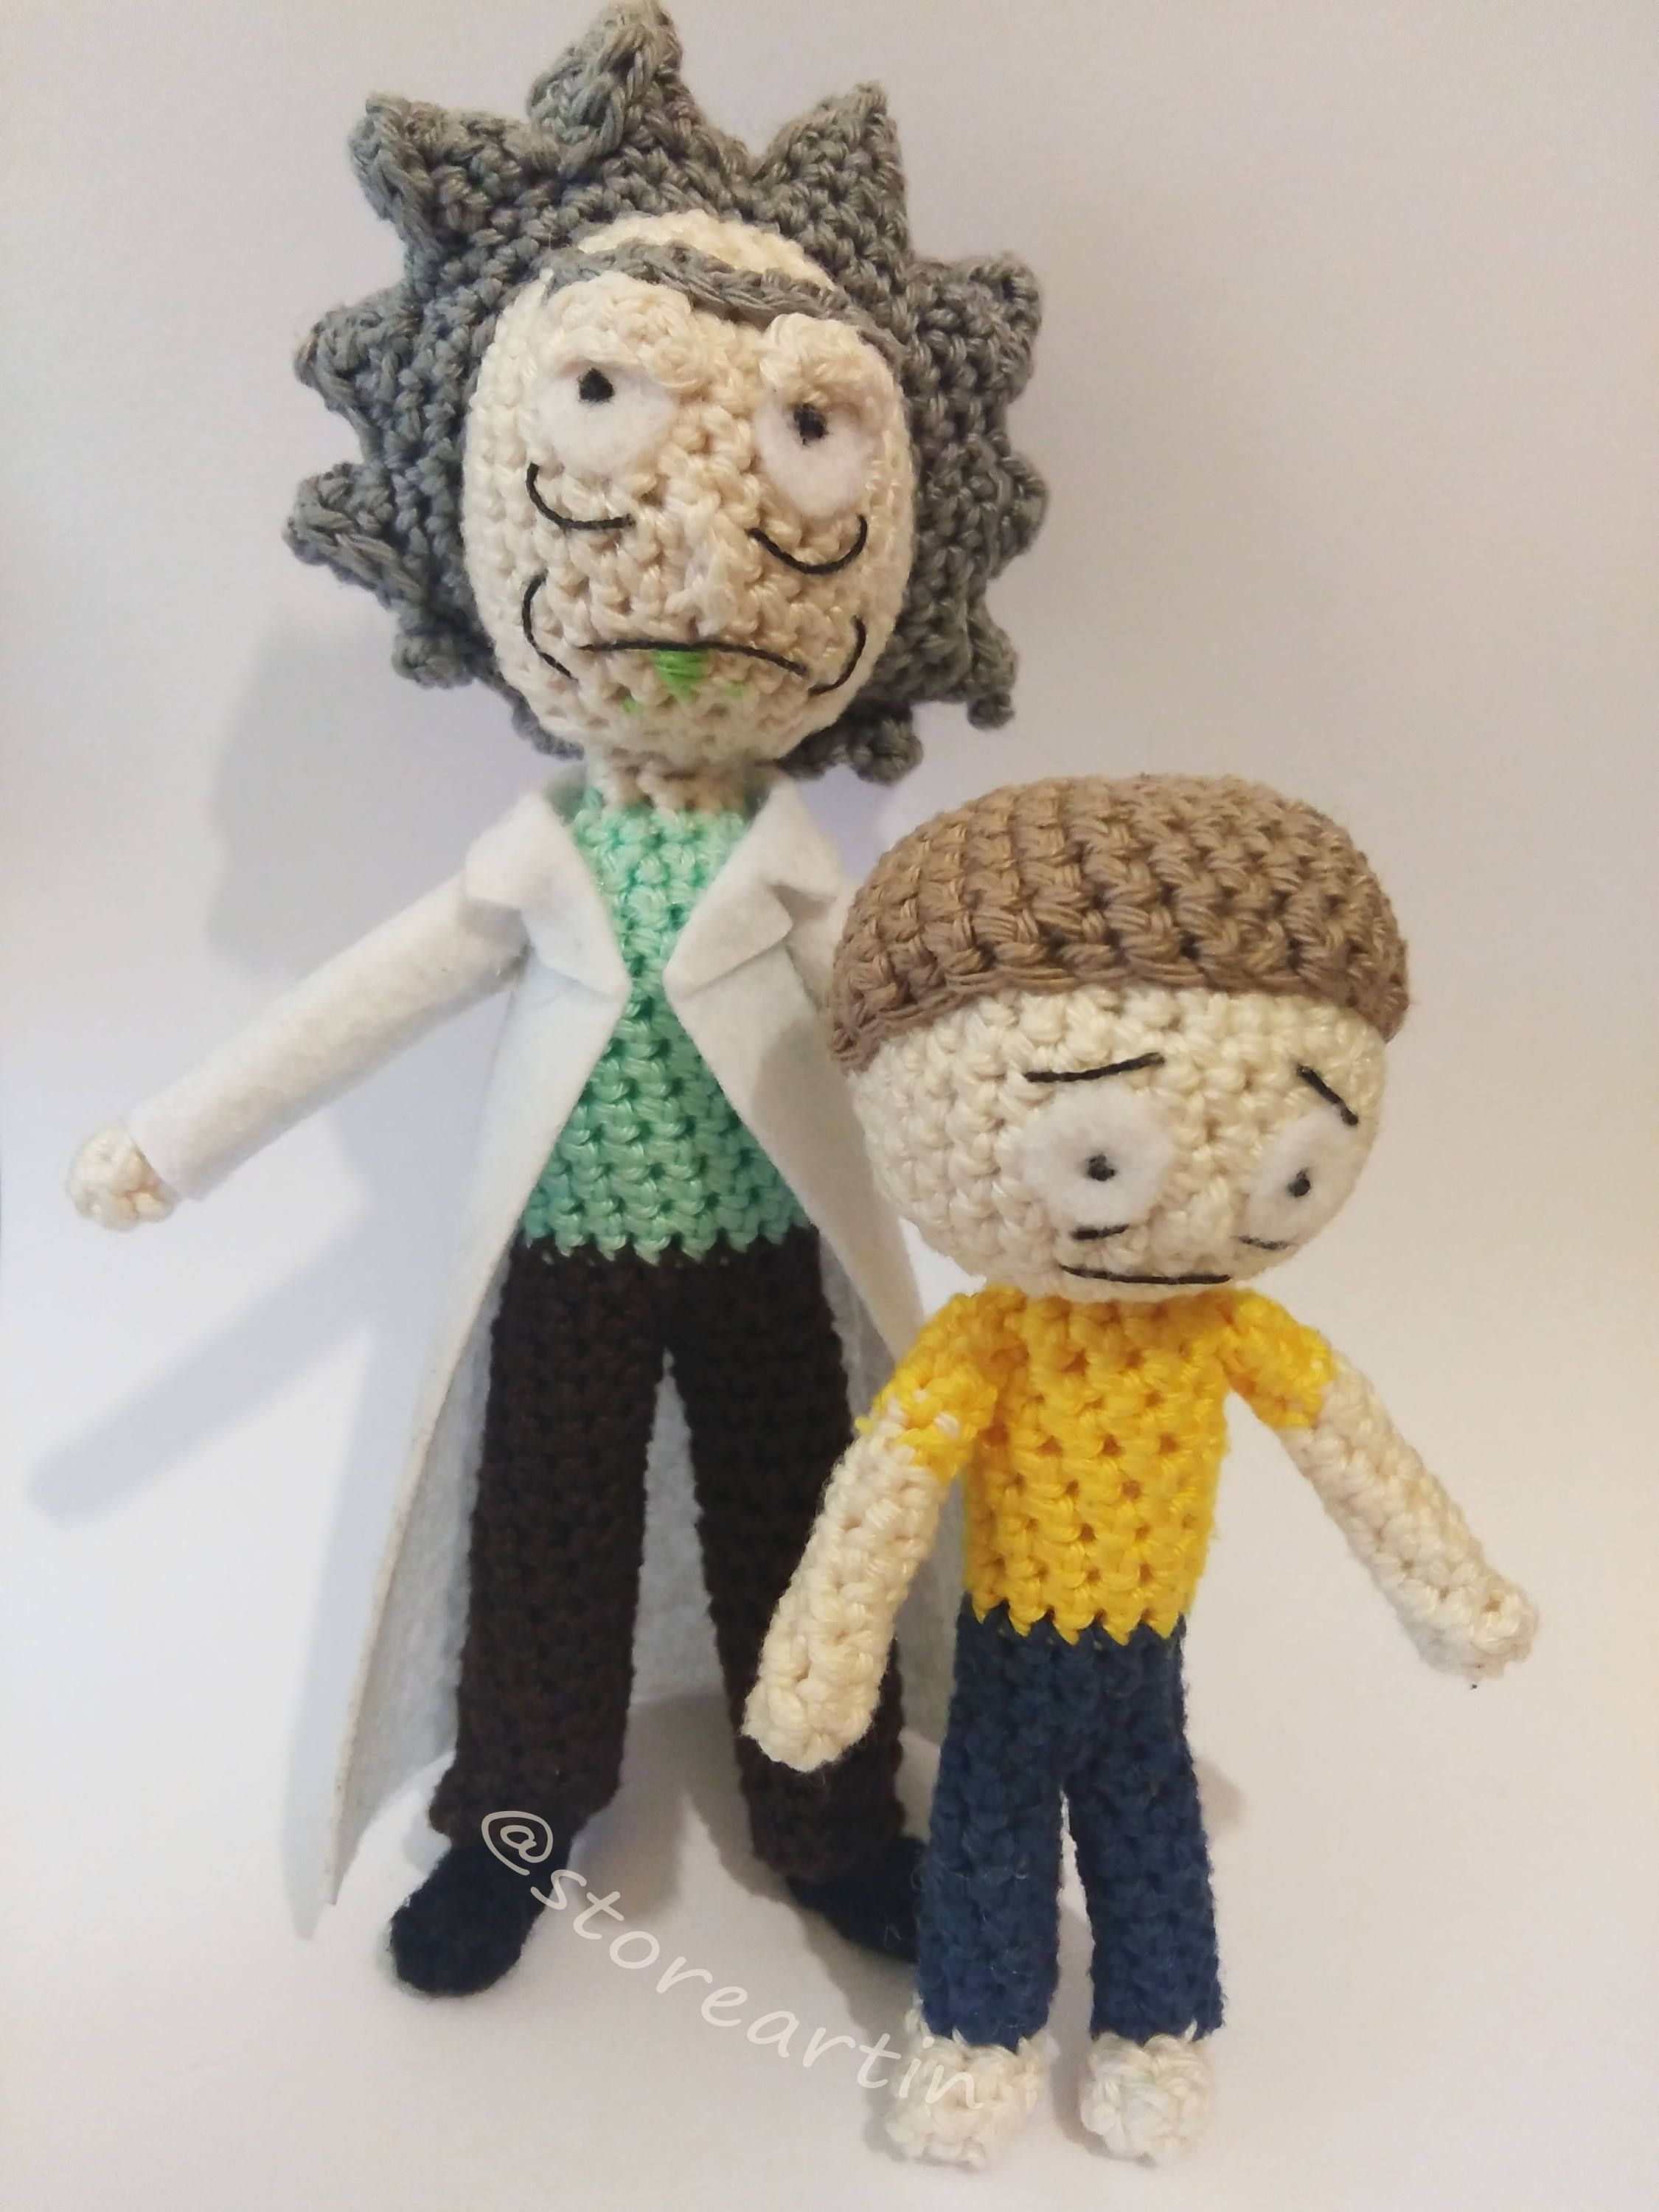 Rick and Morty Rick Sanchez Amigurumi by crushed88 on Etsy | Crochet  amigurumi, Crochet patterns, Crochet projects | 3000x2250